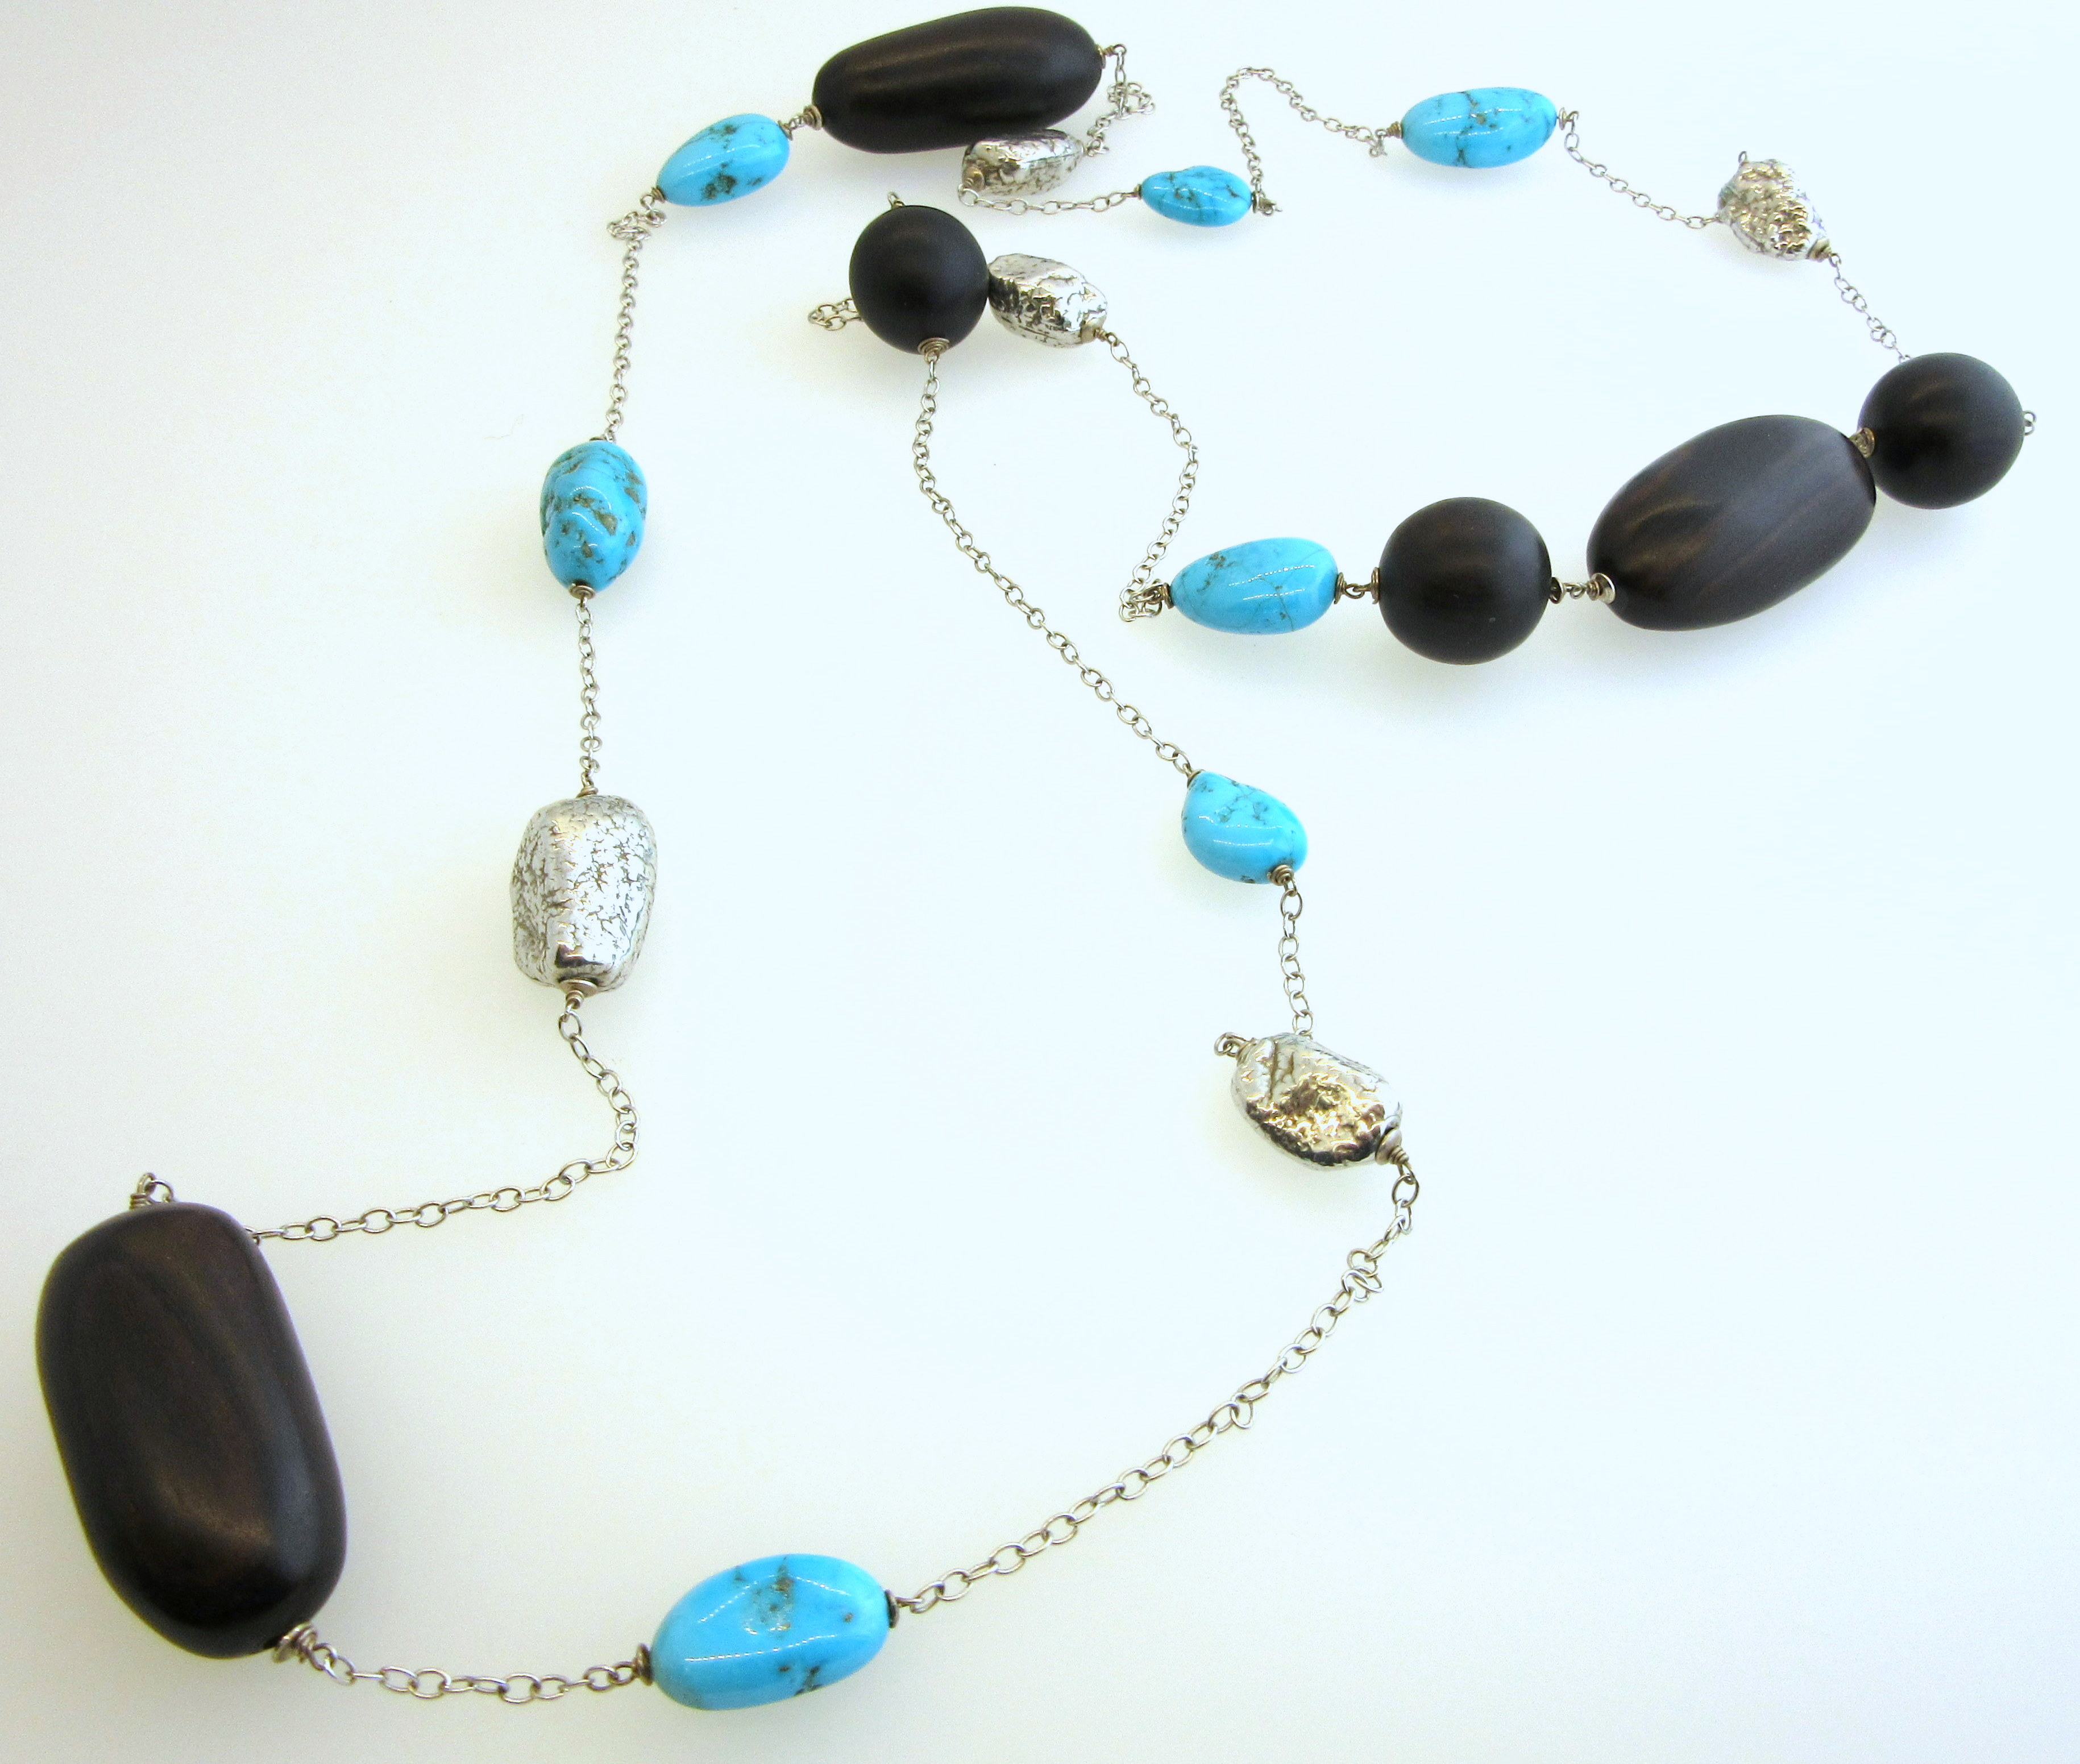 Turquoise & Wooden Bead Necklace